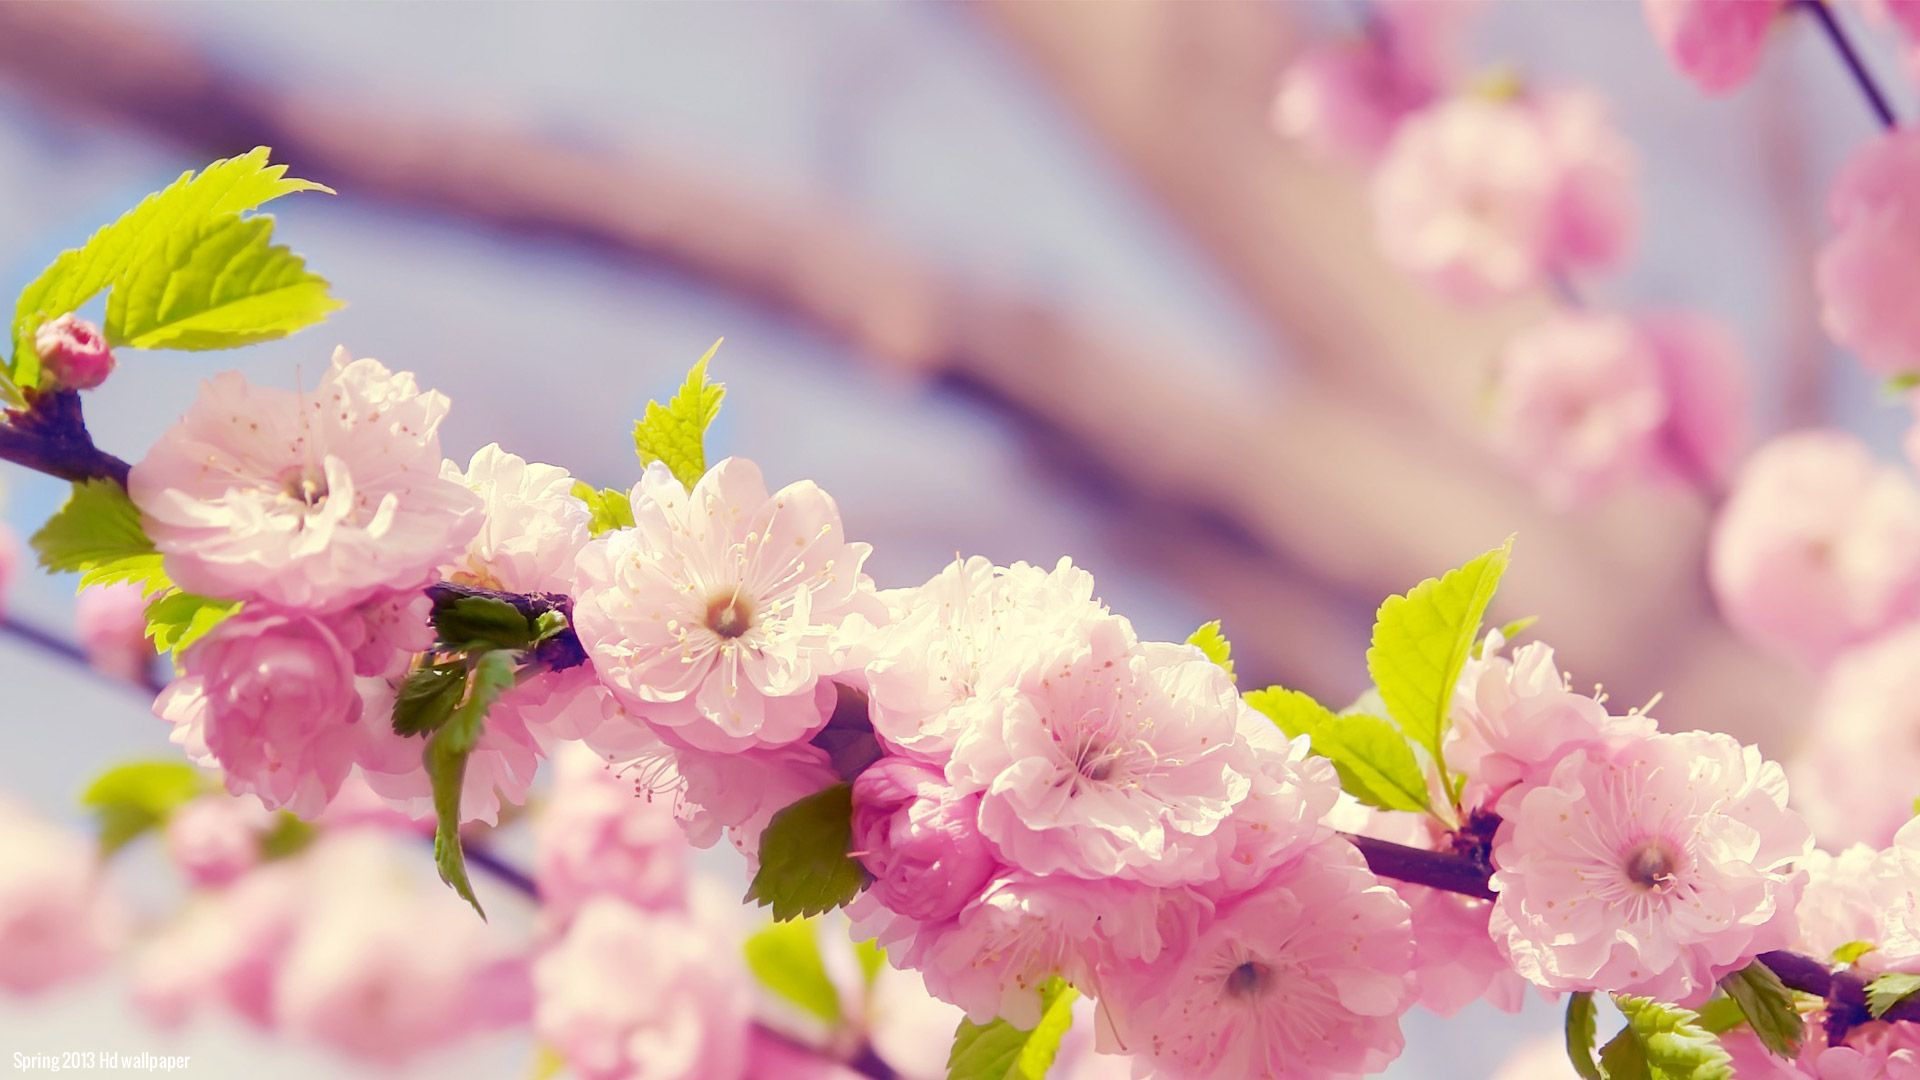 spring-flowers-picture-wallpaper-hd-download-free-07